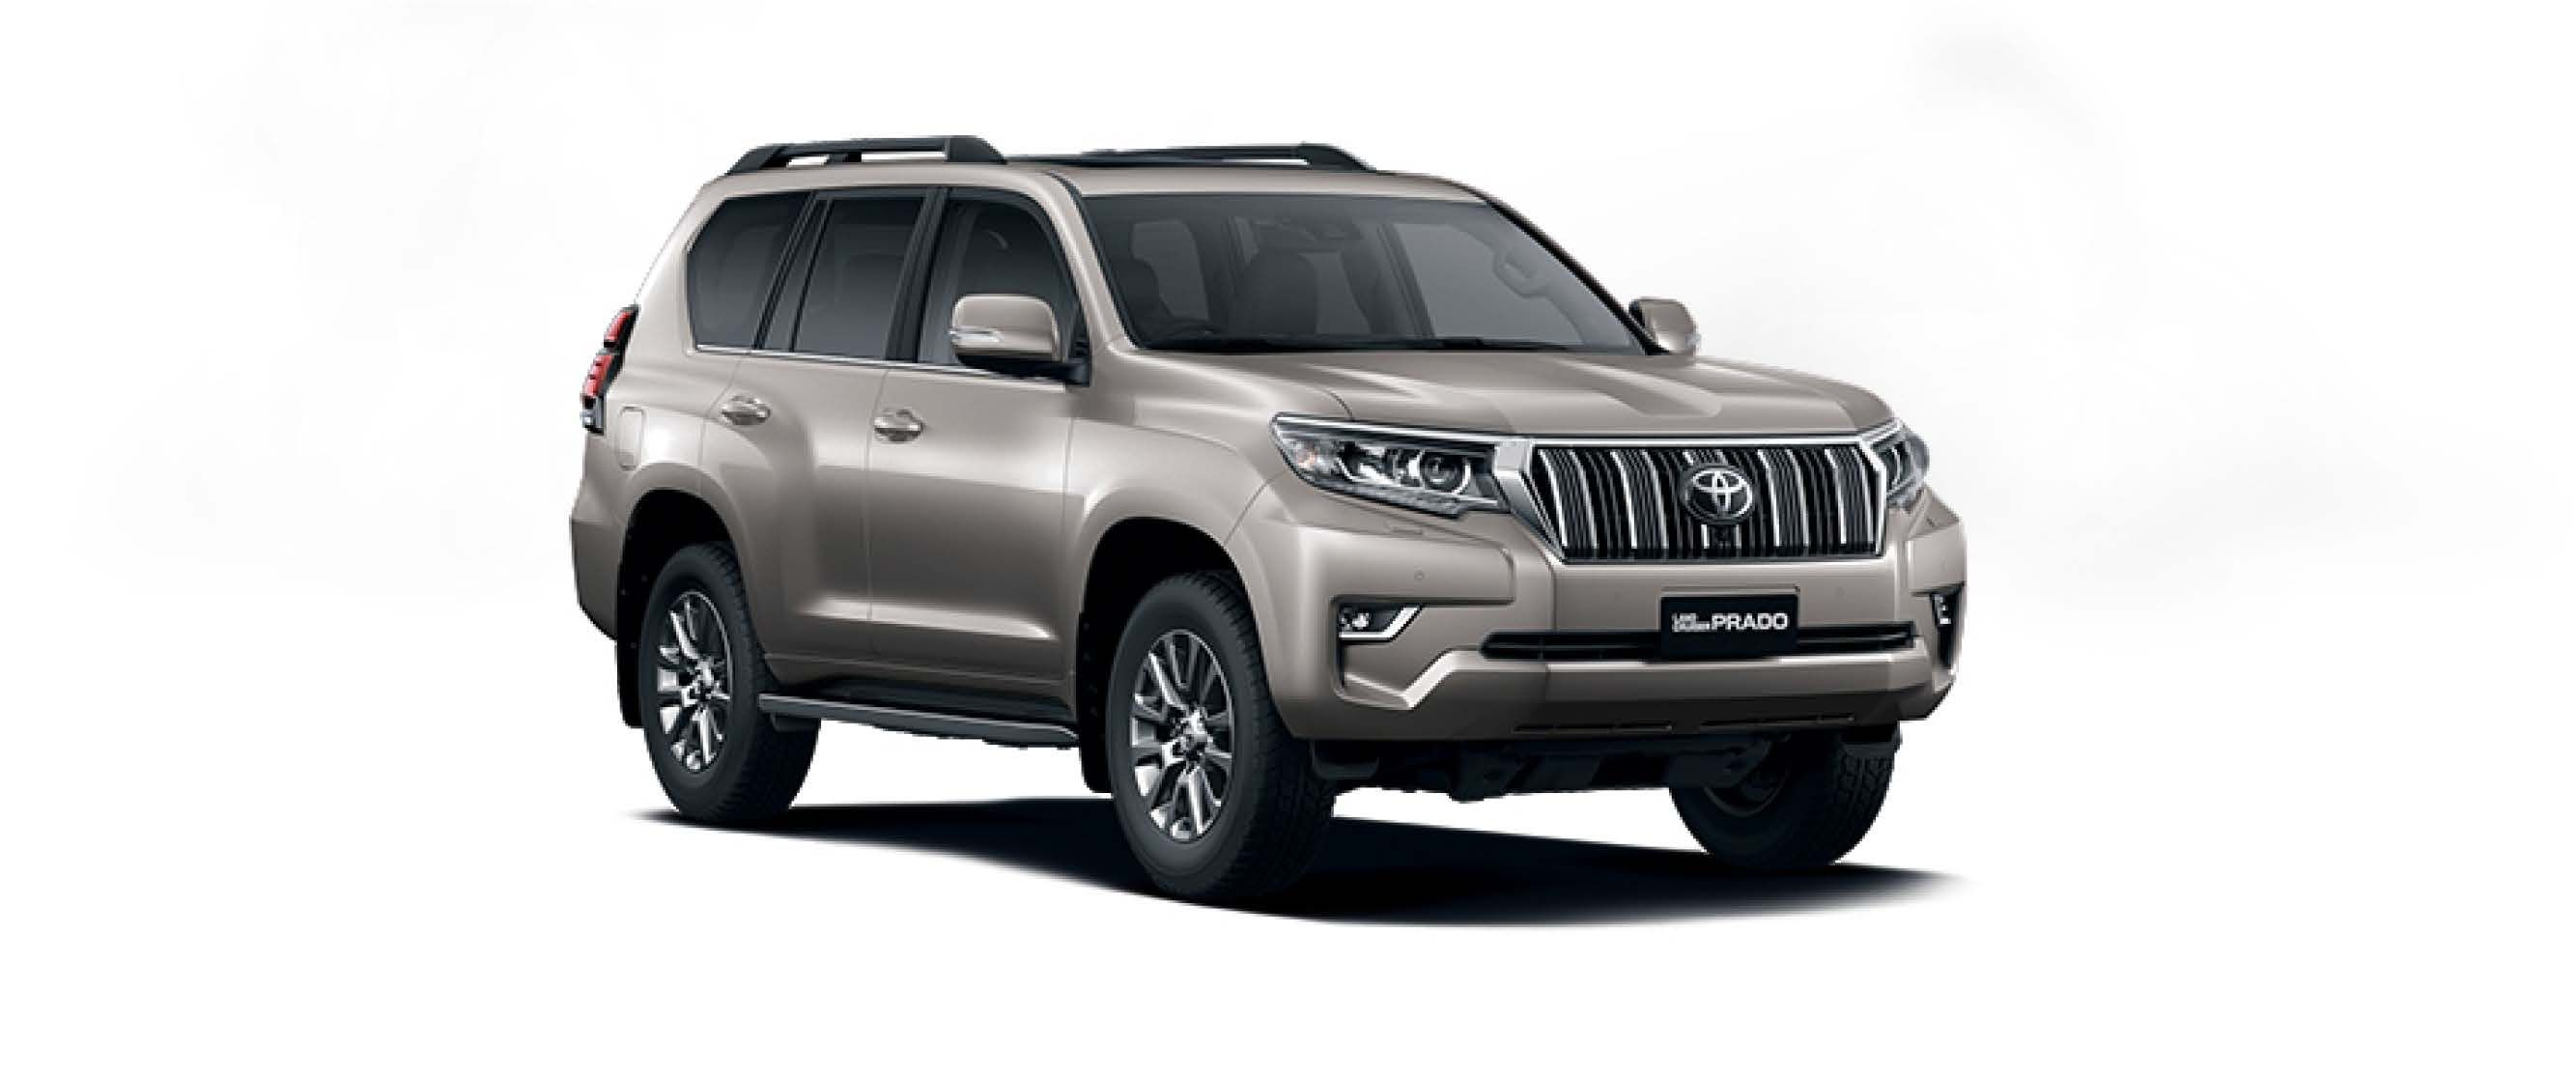 toyota land cruiser prado my17 3 0dt vx sunroof at. Black Bedroom Furniture Sets. Home Design Ideas